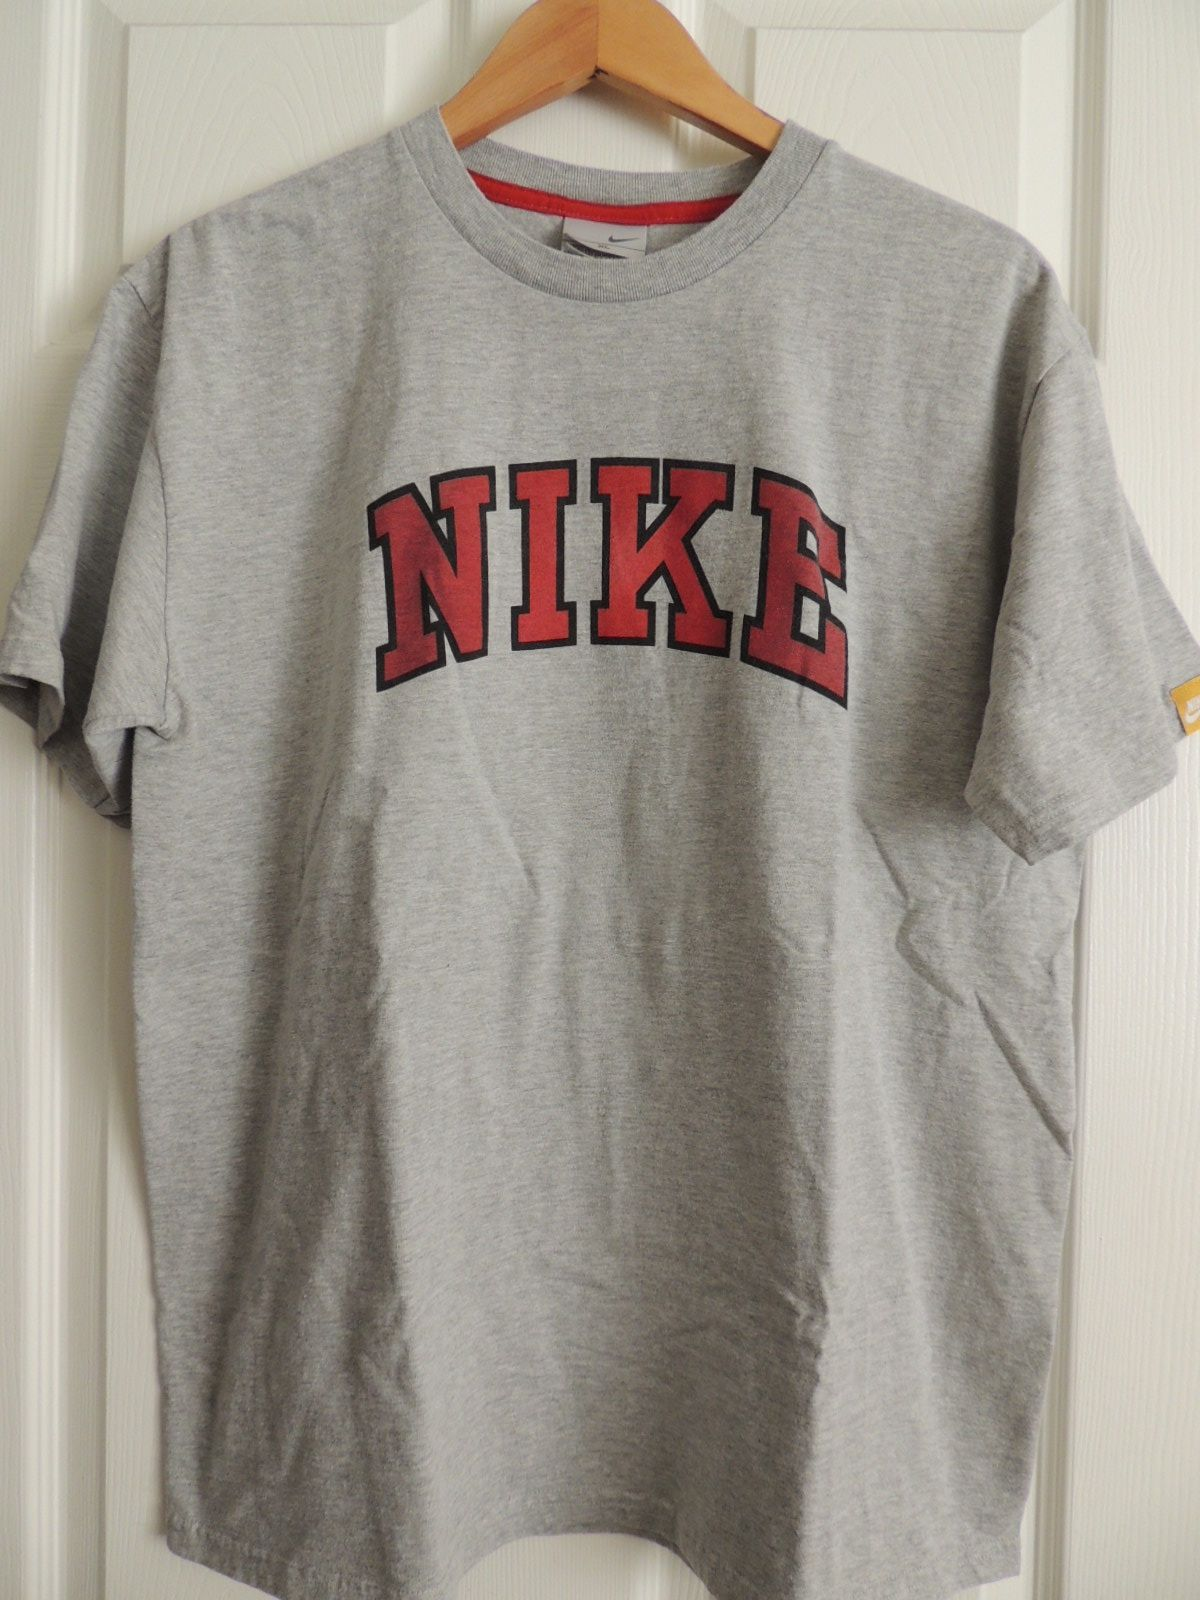 9a32ab1e5 Vintage NIKE Spell Out...90s streetwear -SOLD- | Vintage Mens in ...